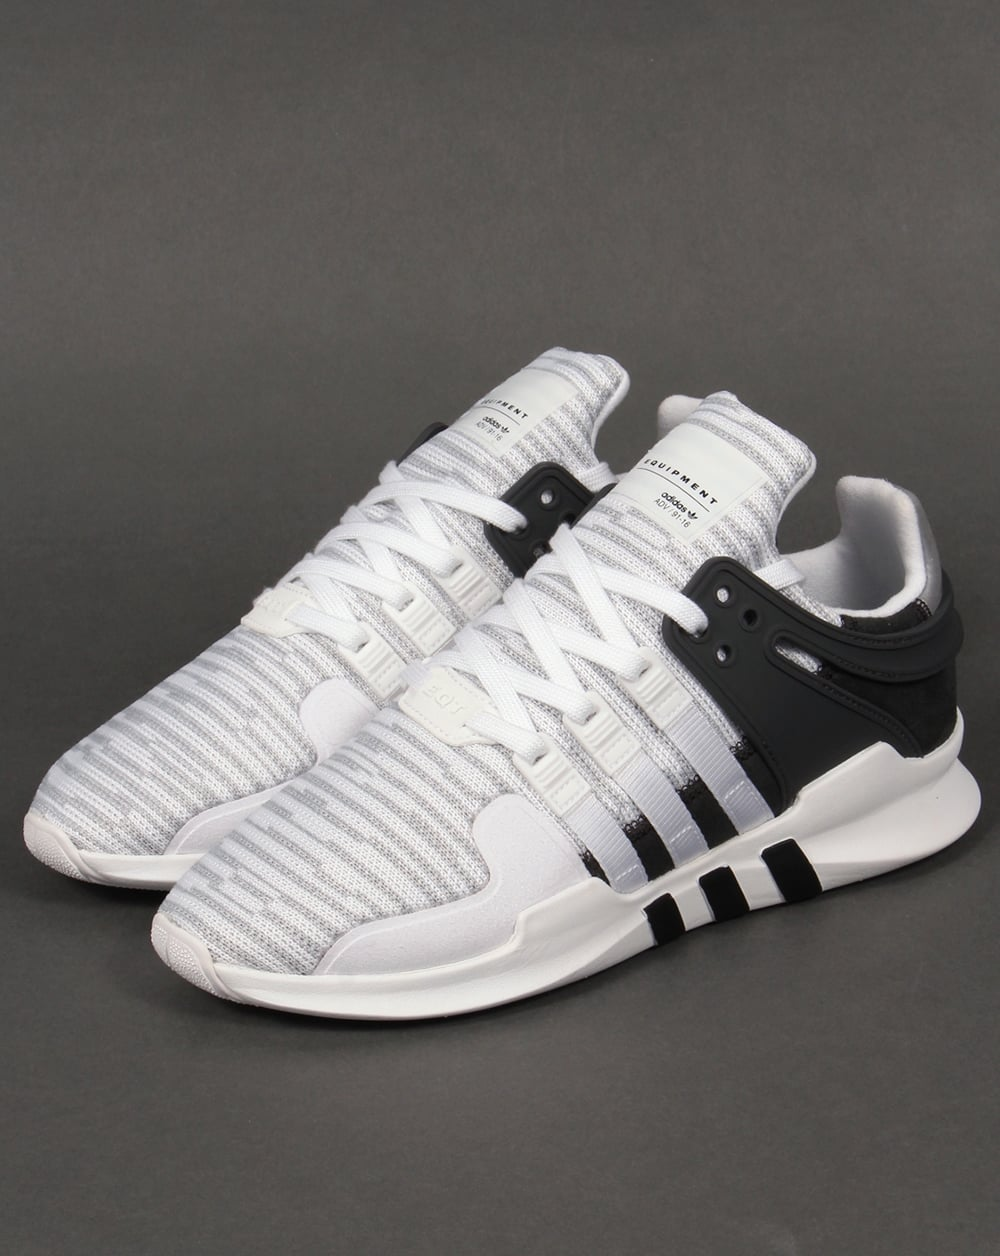 adidas EQT Running Support 93 Primeknit Sylt Support